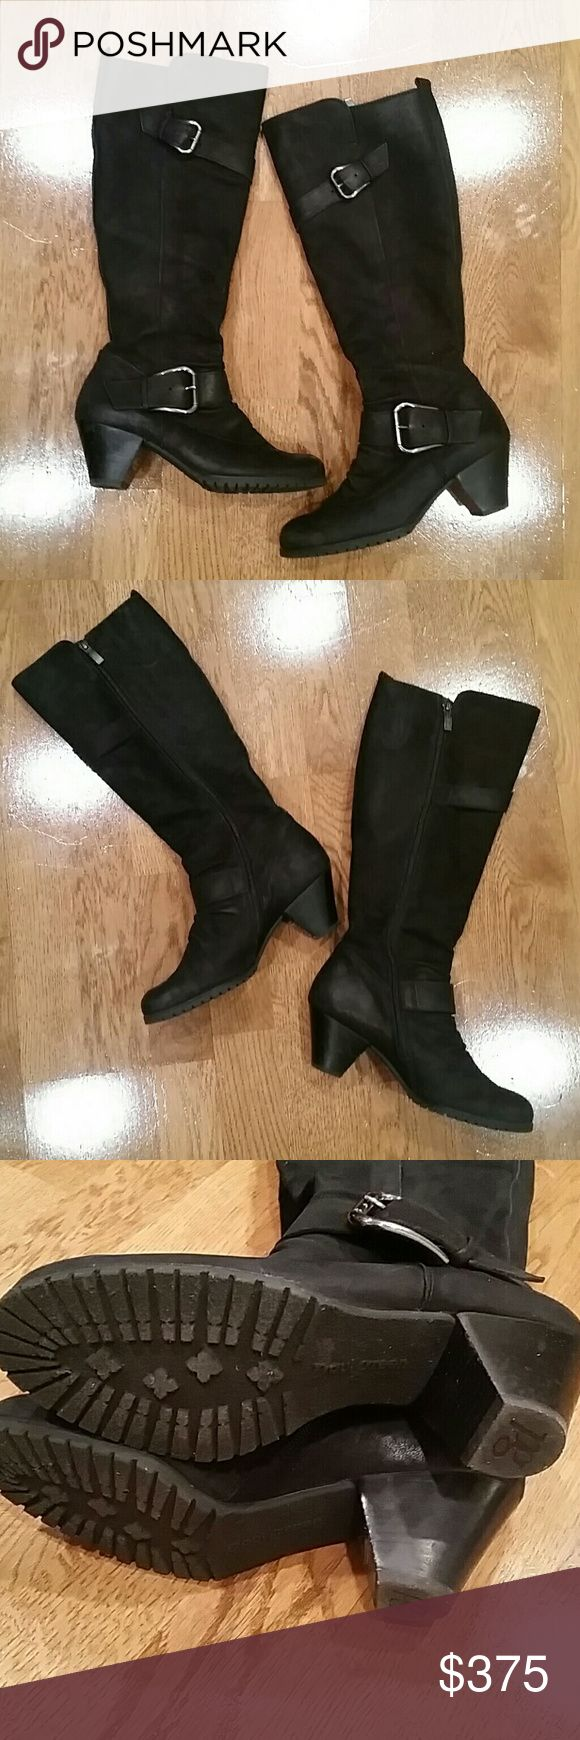 Paul Green Black Suede Double Buckle Boots Cute and comfortable Paul Green black suede double buckle boots, size 6. Only worn a few times and is in excellent condition. Paul Green Shoes Heeled Boots